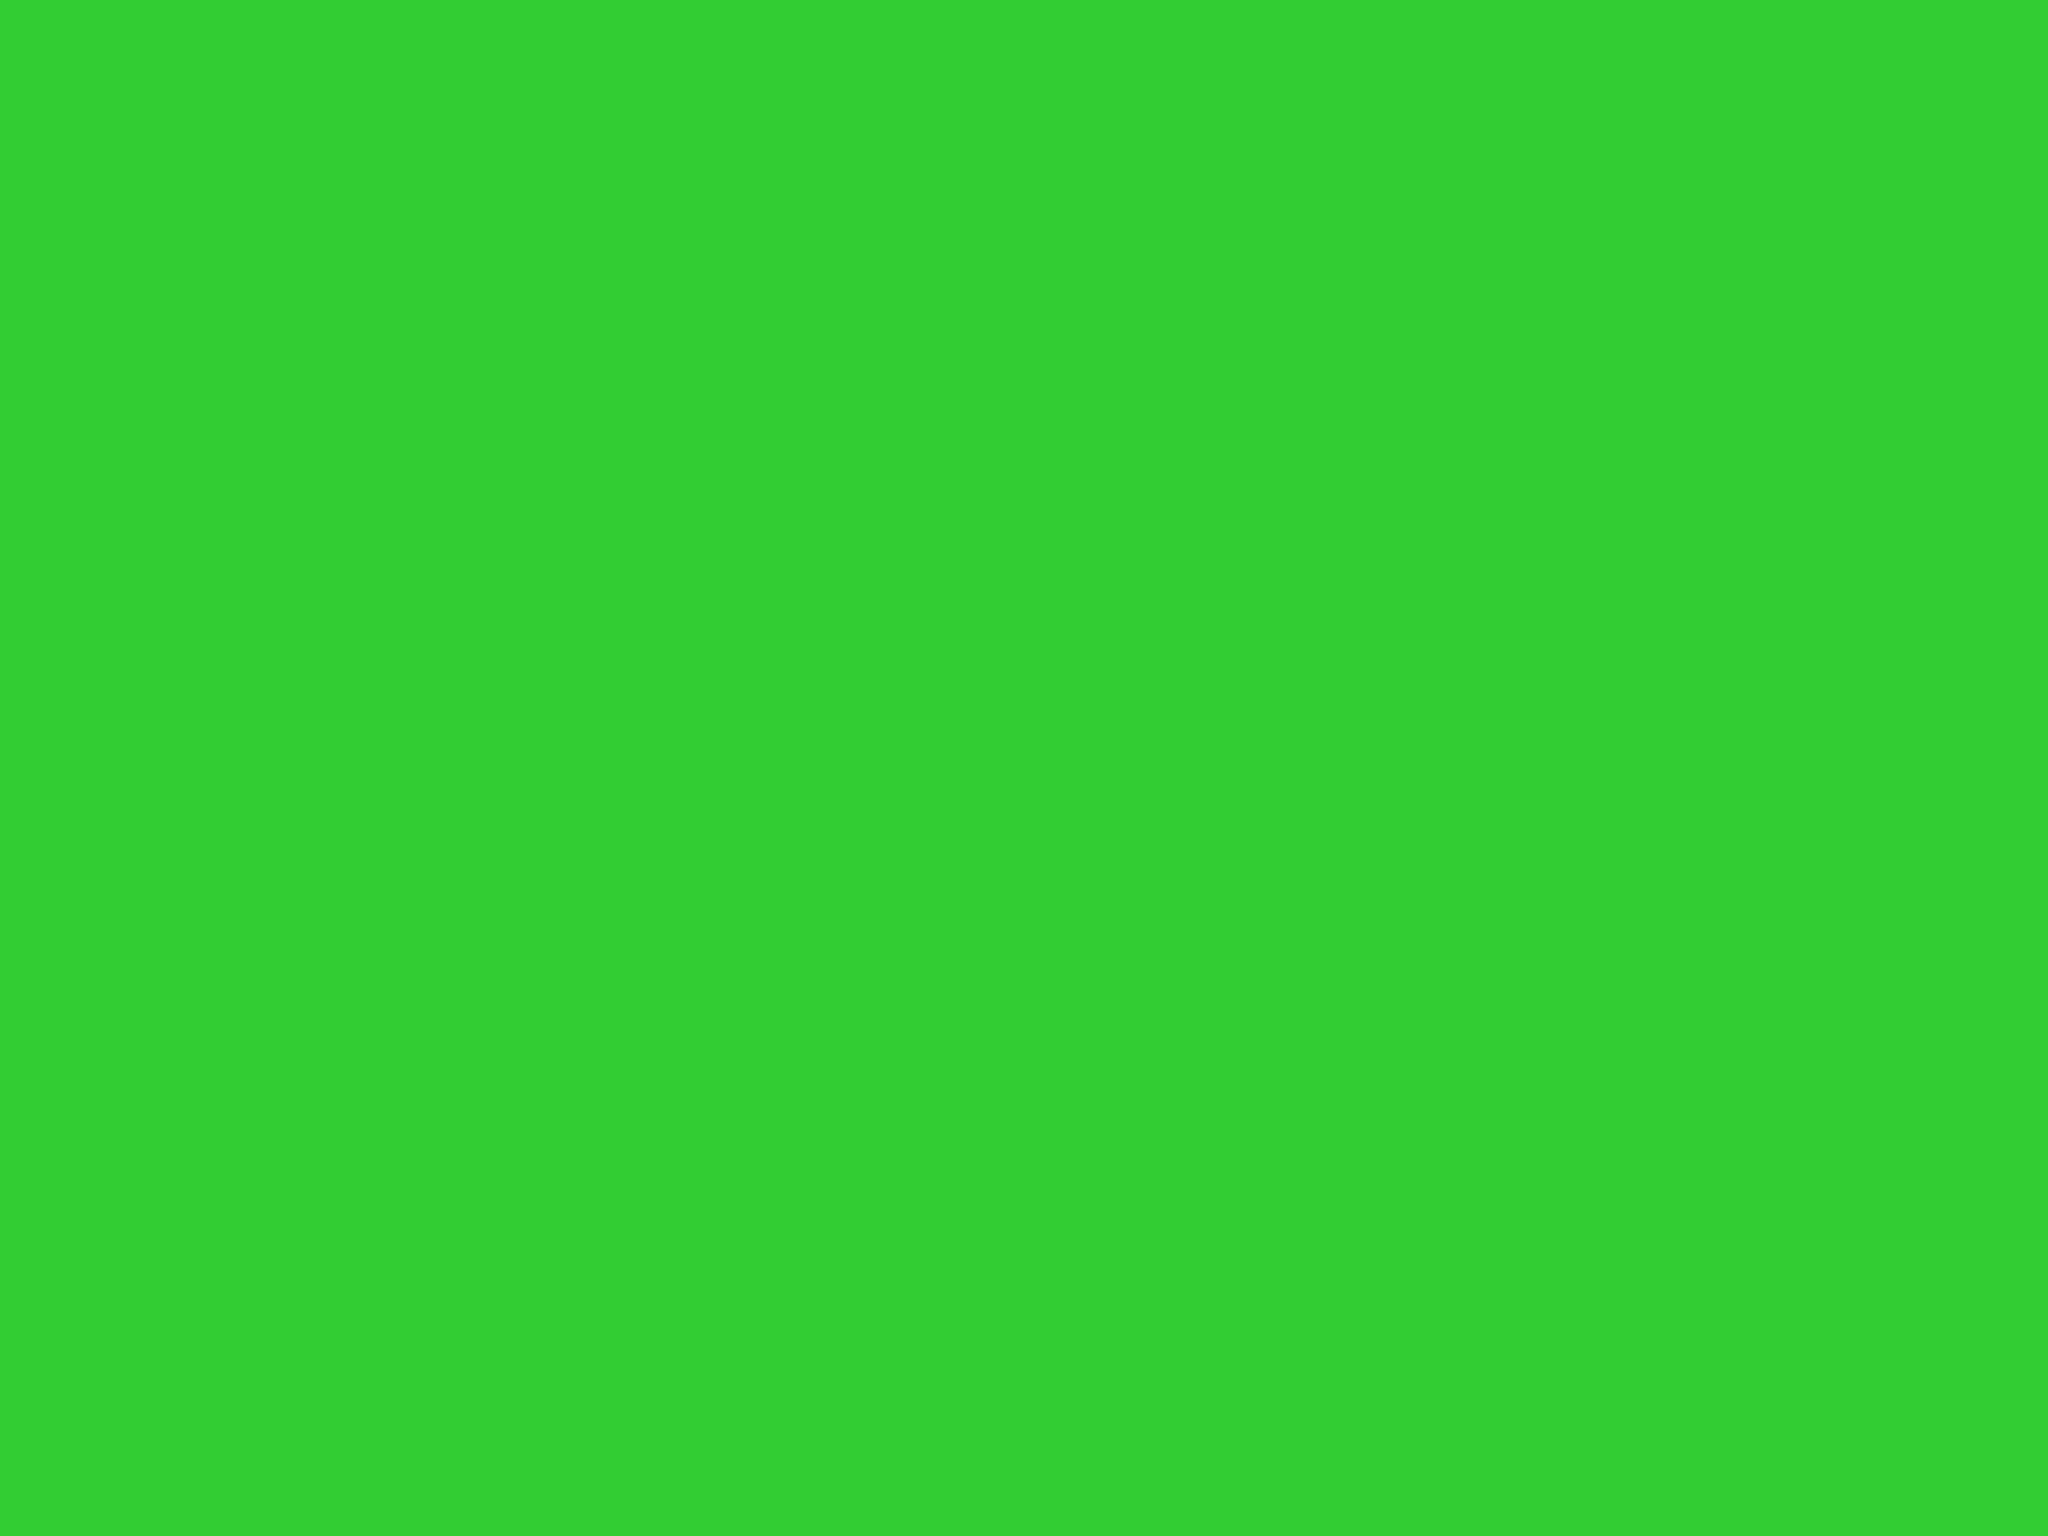 lime color background - photo #16